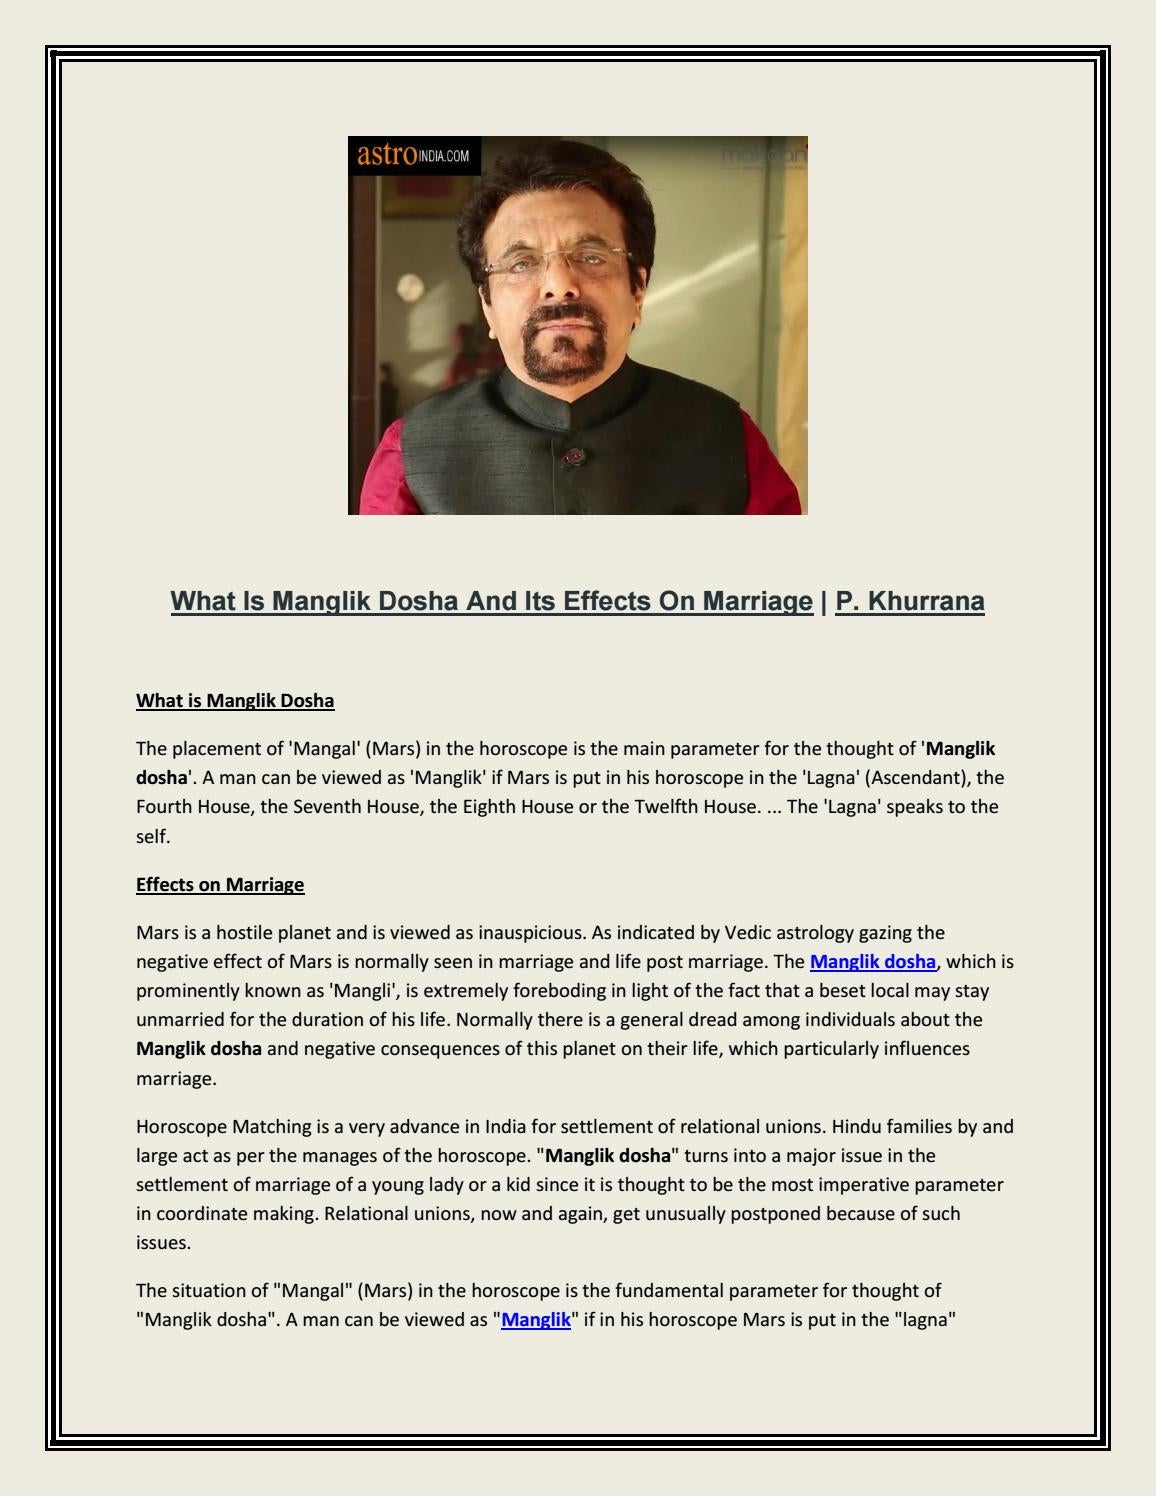 What Is Manglik Dosha And Its Effects On Marriage | P  Khurrana by